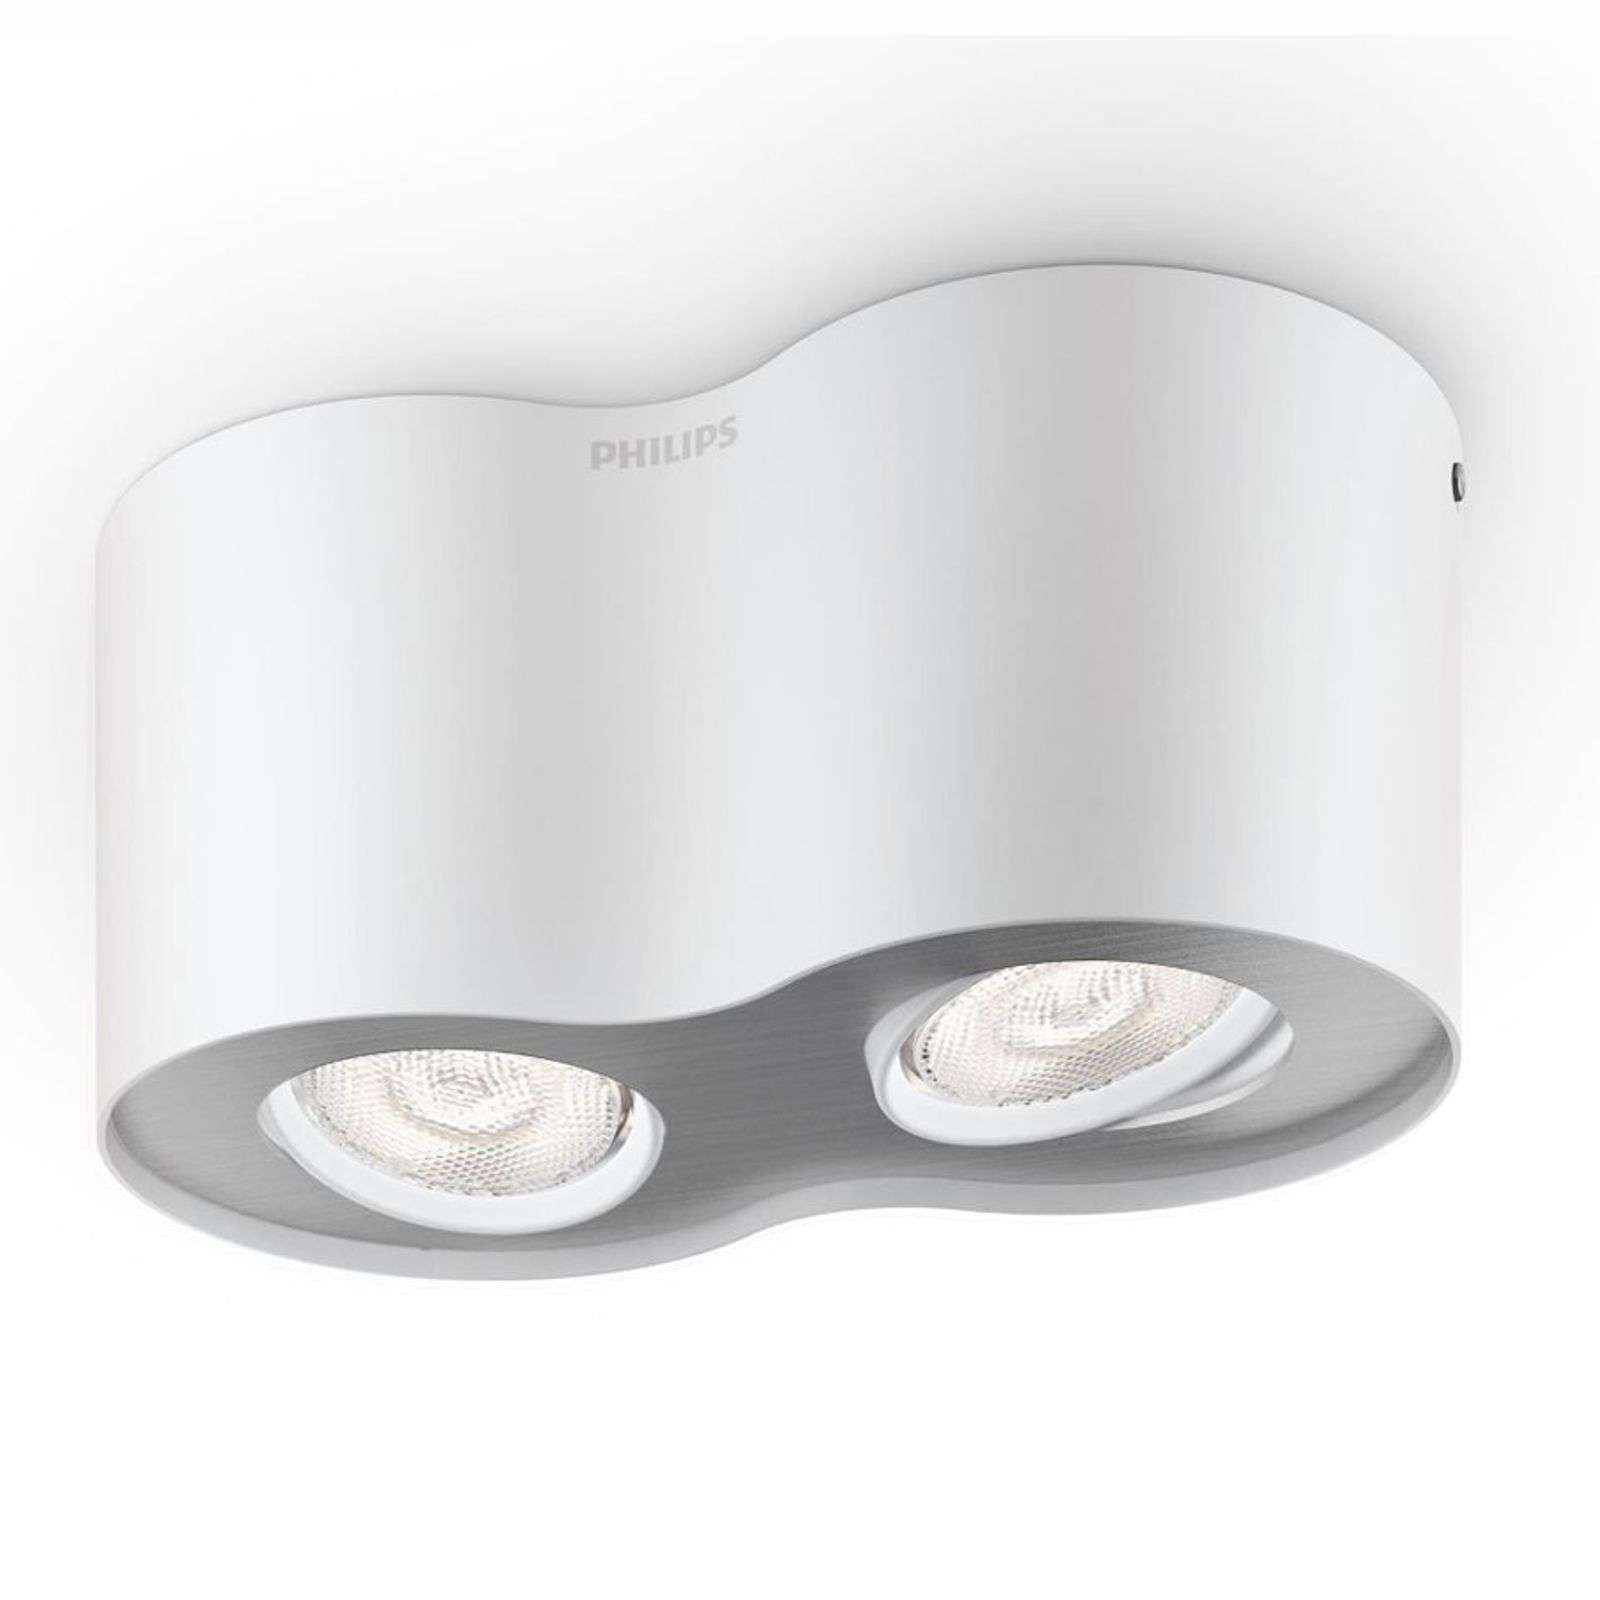 Foco LED Phase de 2 brazos en color blanco